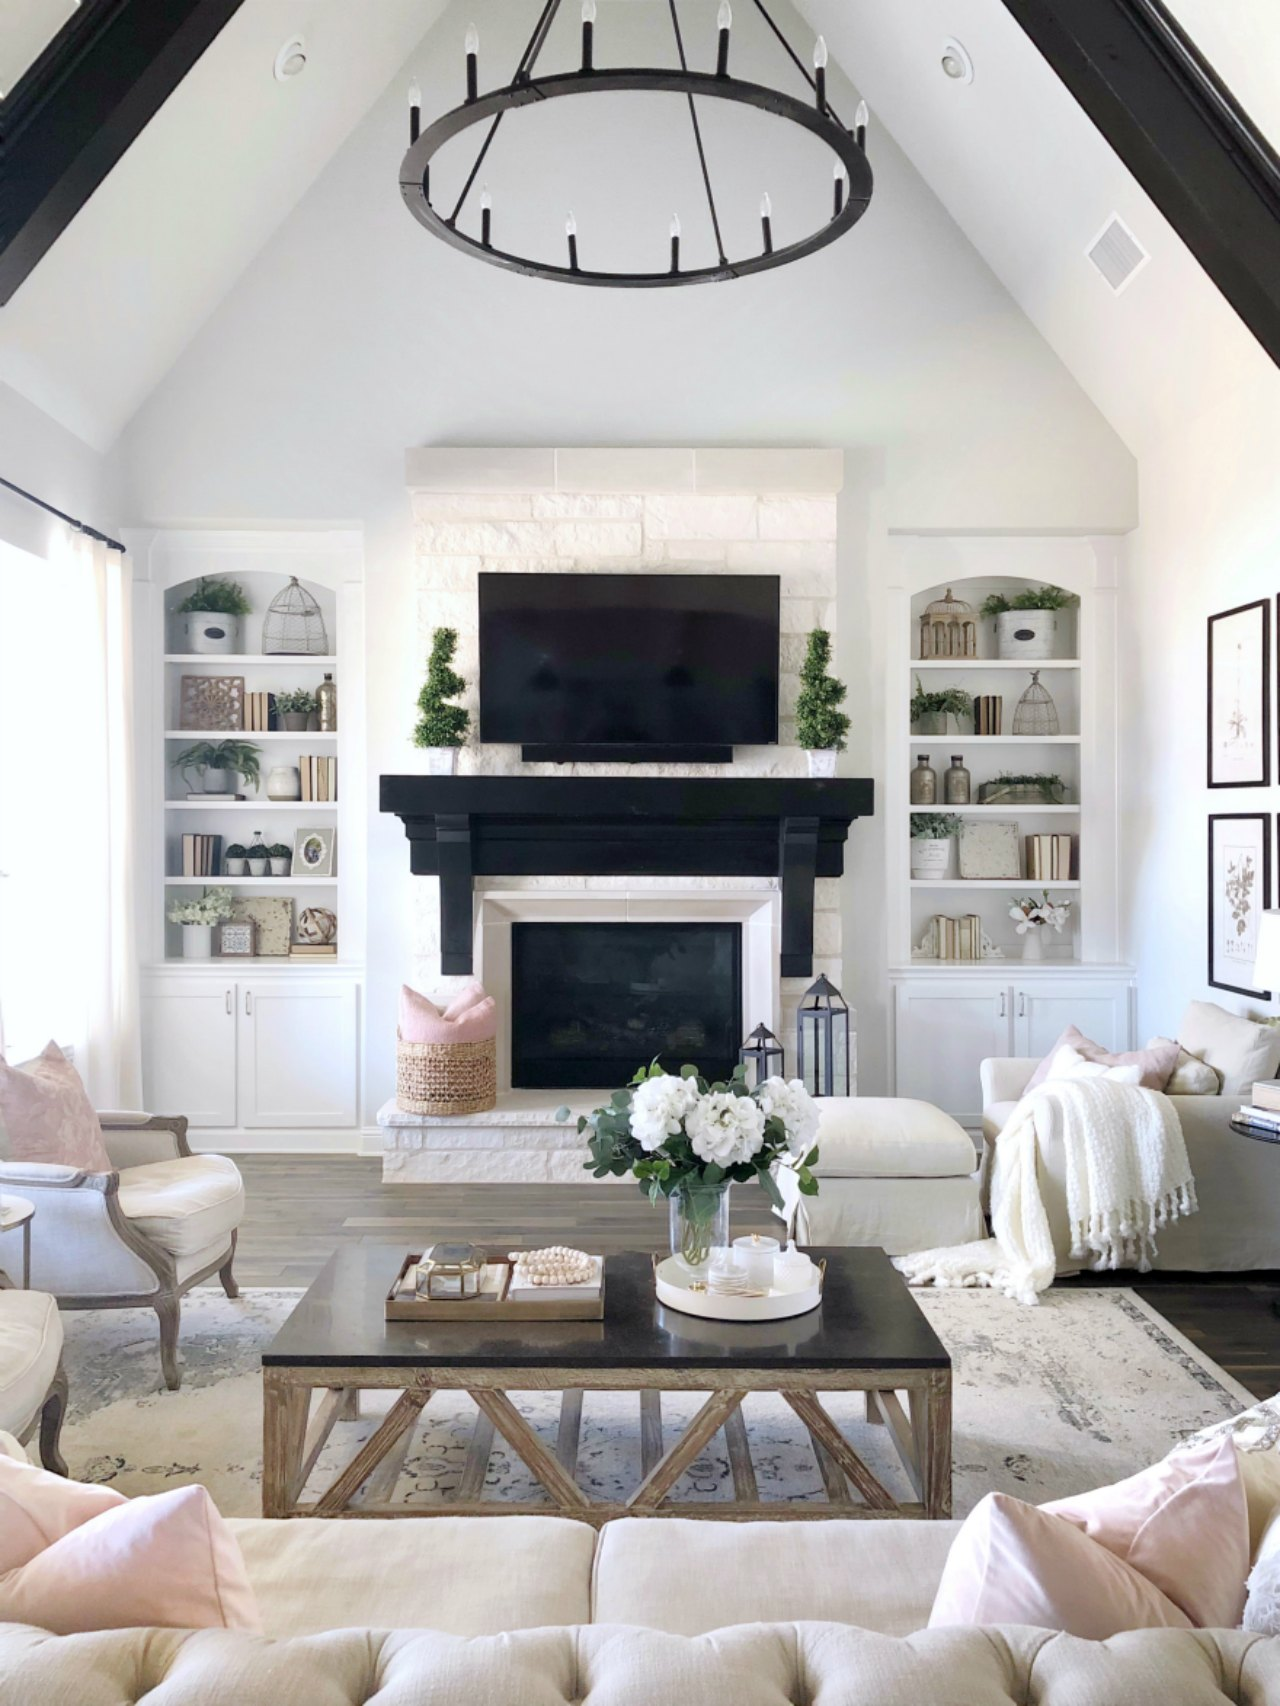 Kitchen and Living Room Tour  Sources  My Texas House